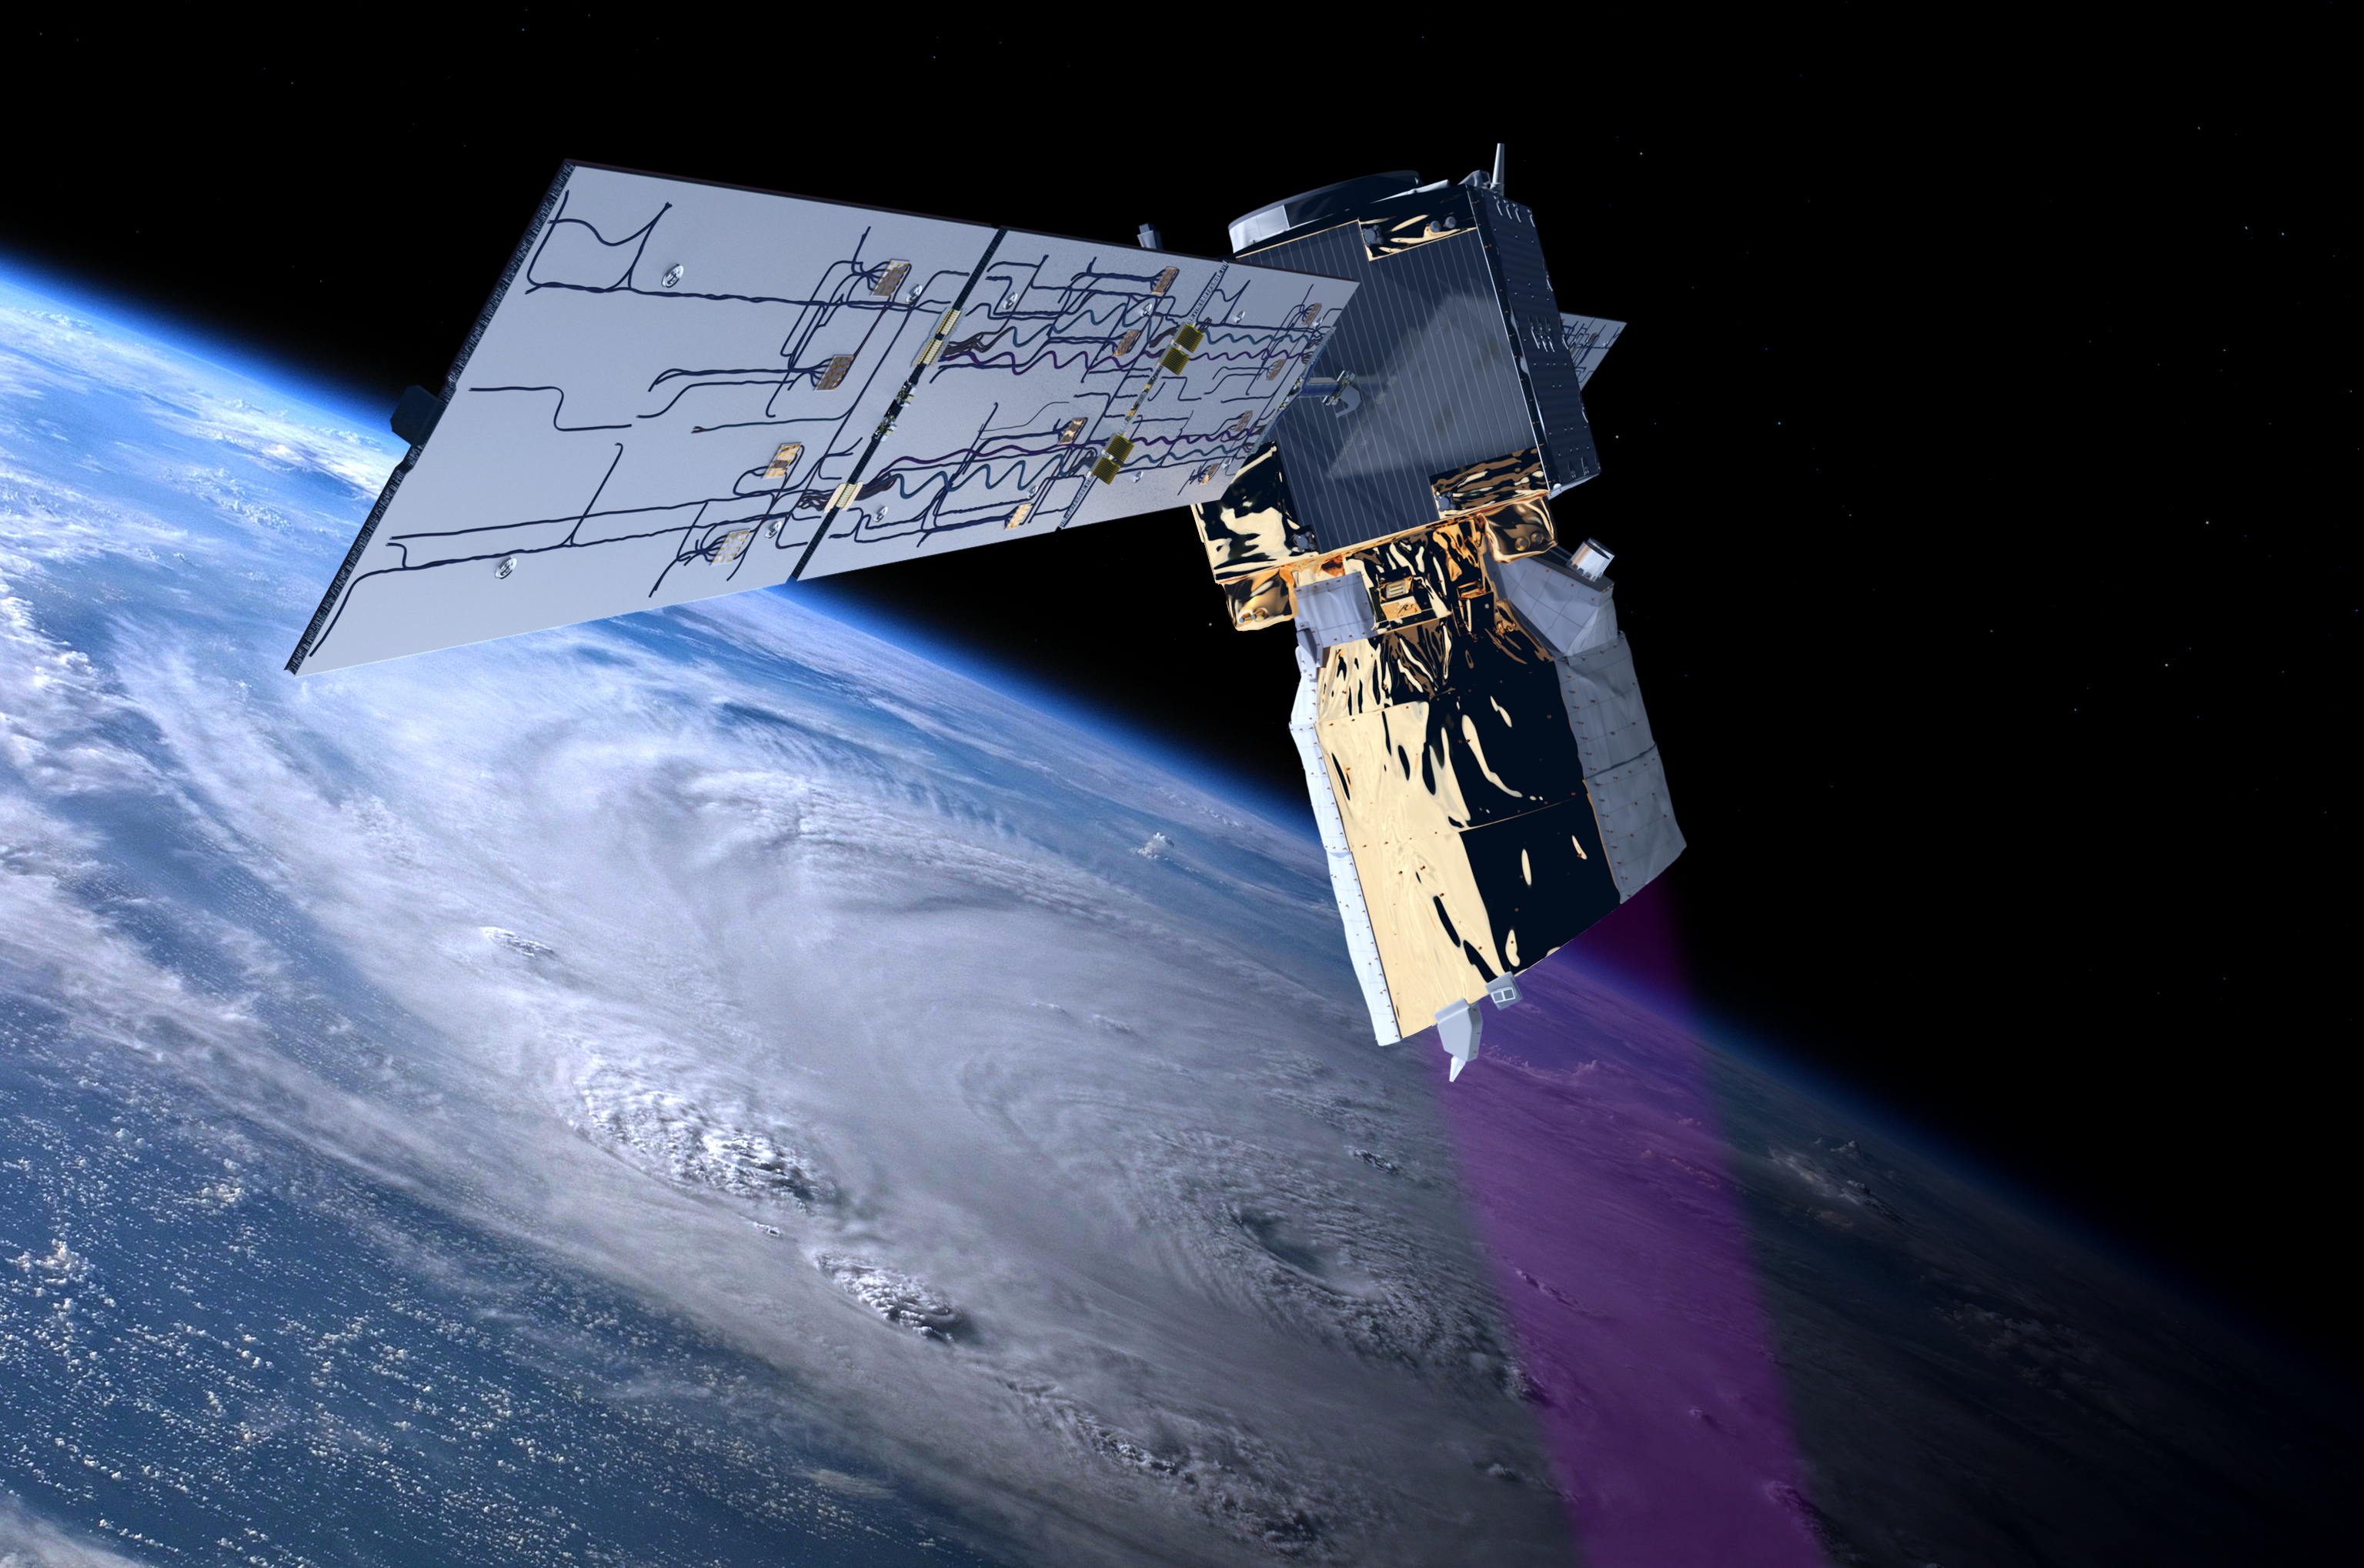 Watch the launch of ESA's Aeolus mission to map Earth's winds with lasers